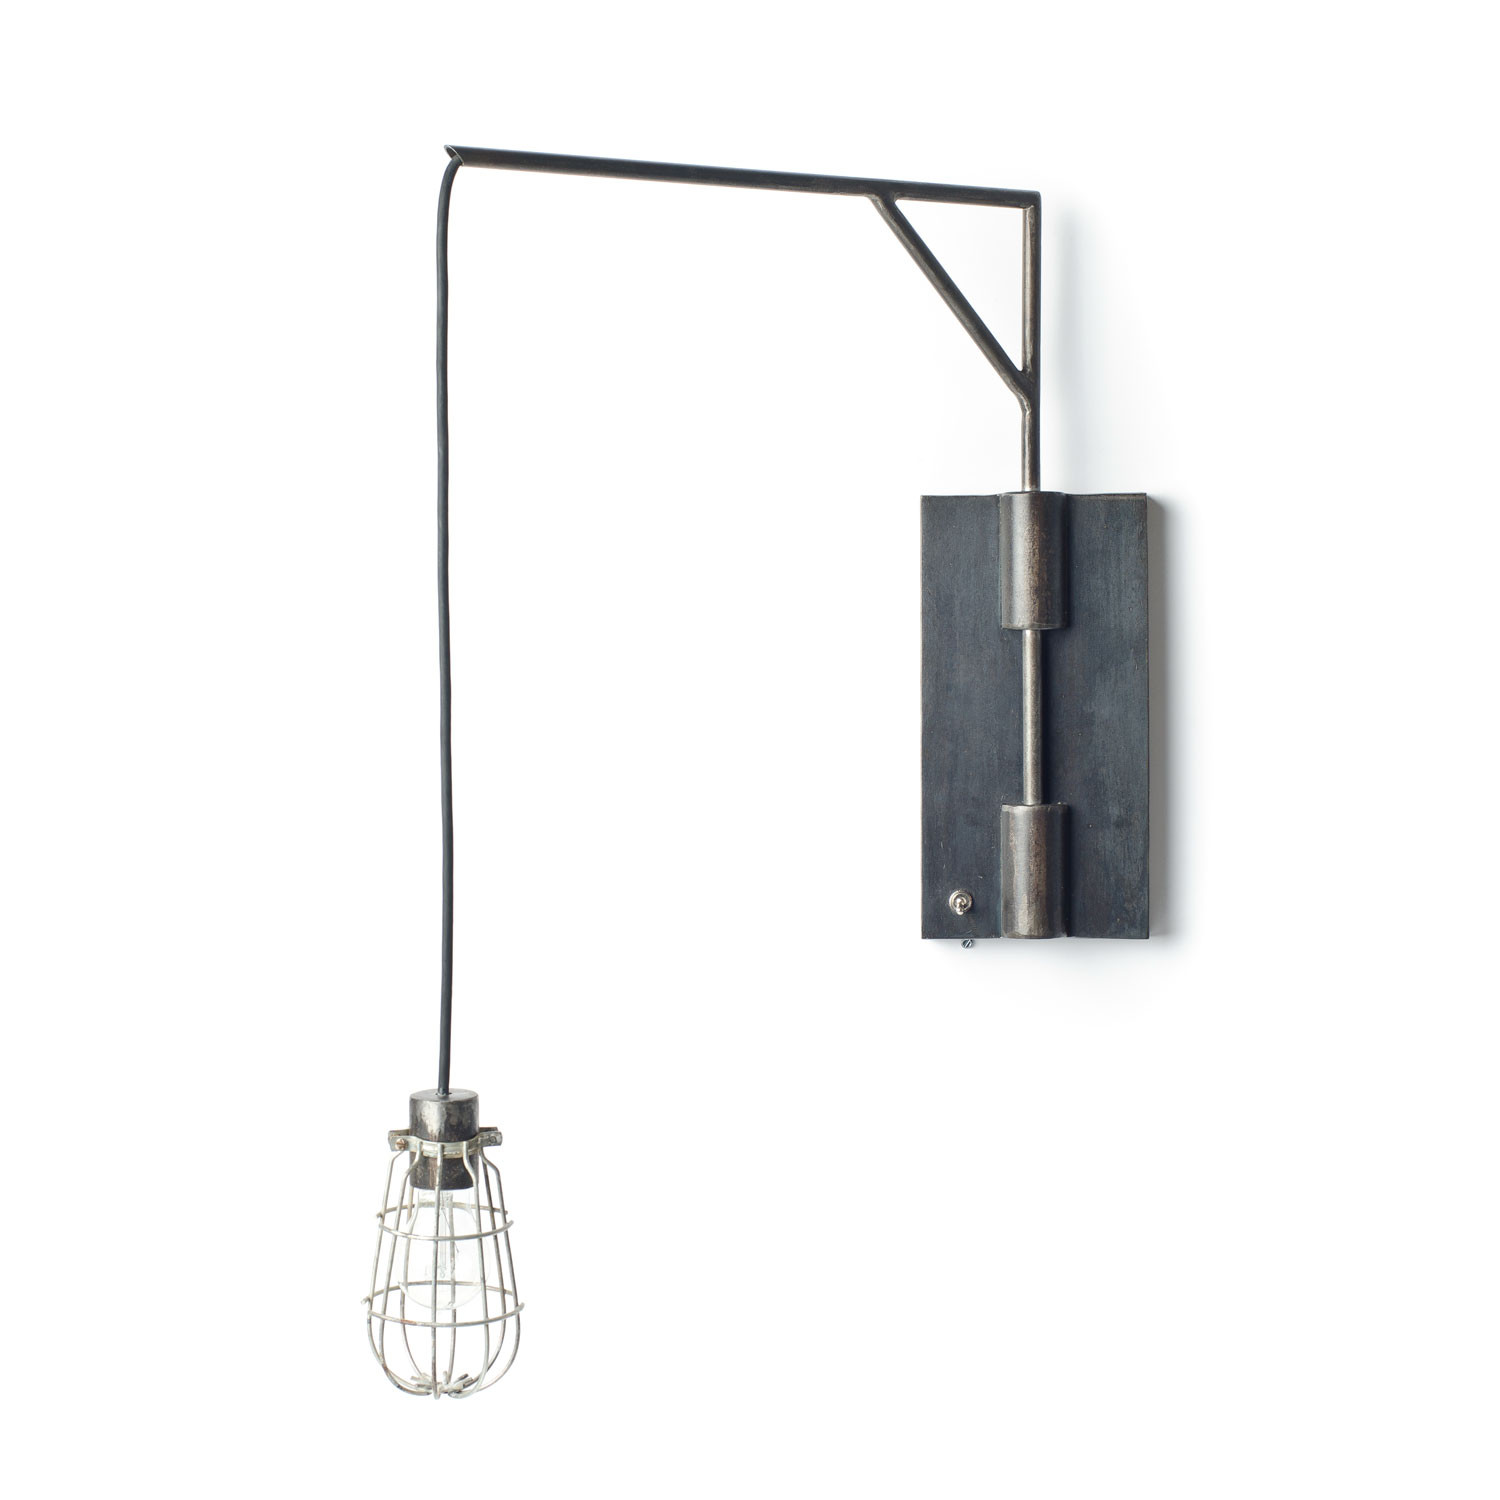 Industrial Swing Arm Lighting Swing Arm Wall Sconce Project Sunday Touch Of Modern